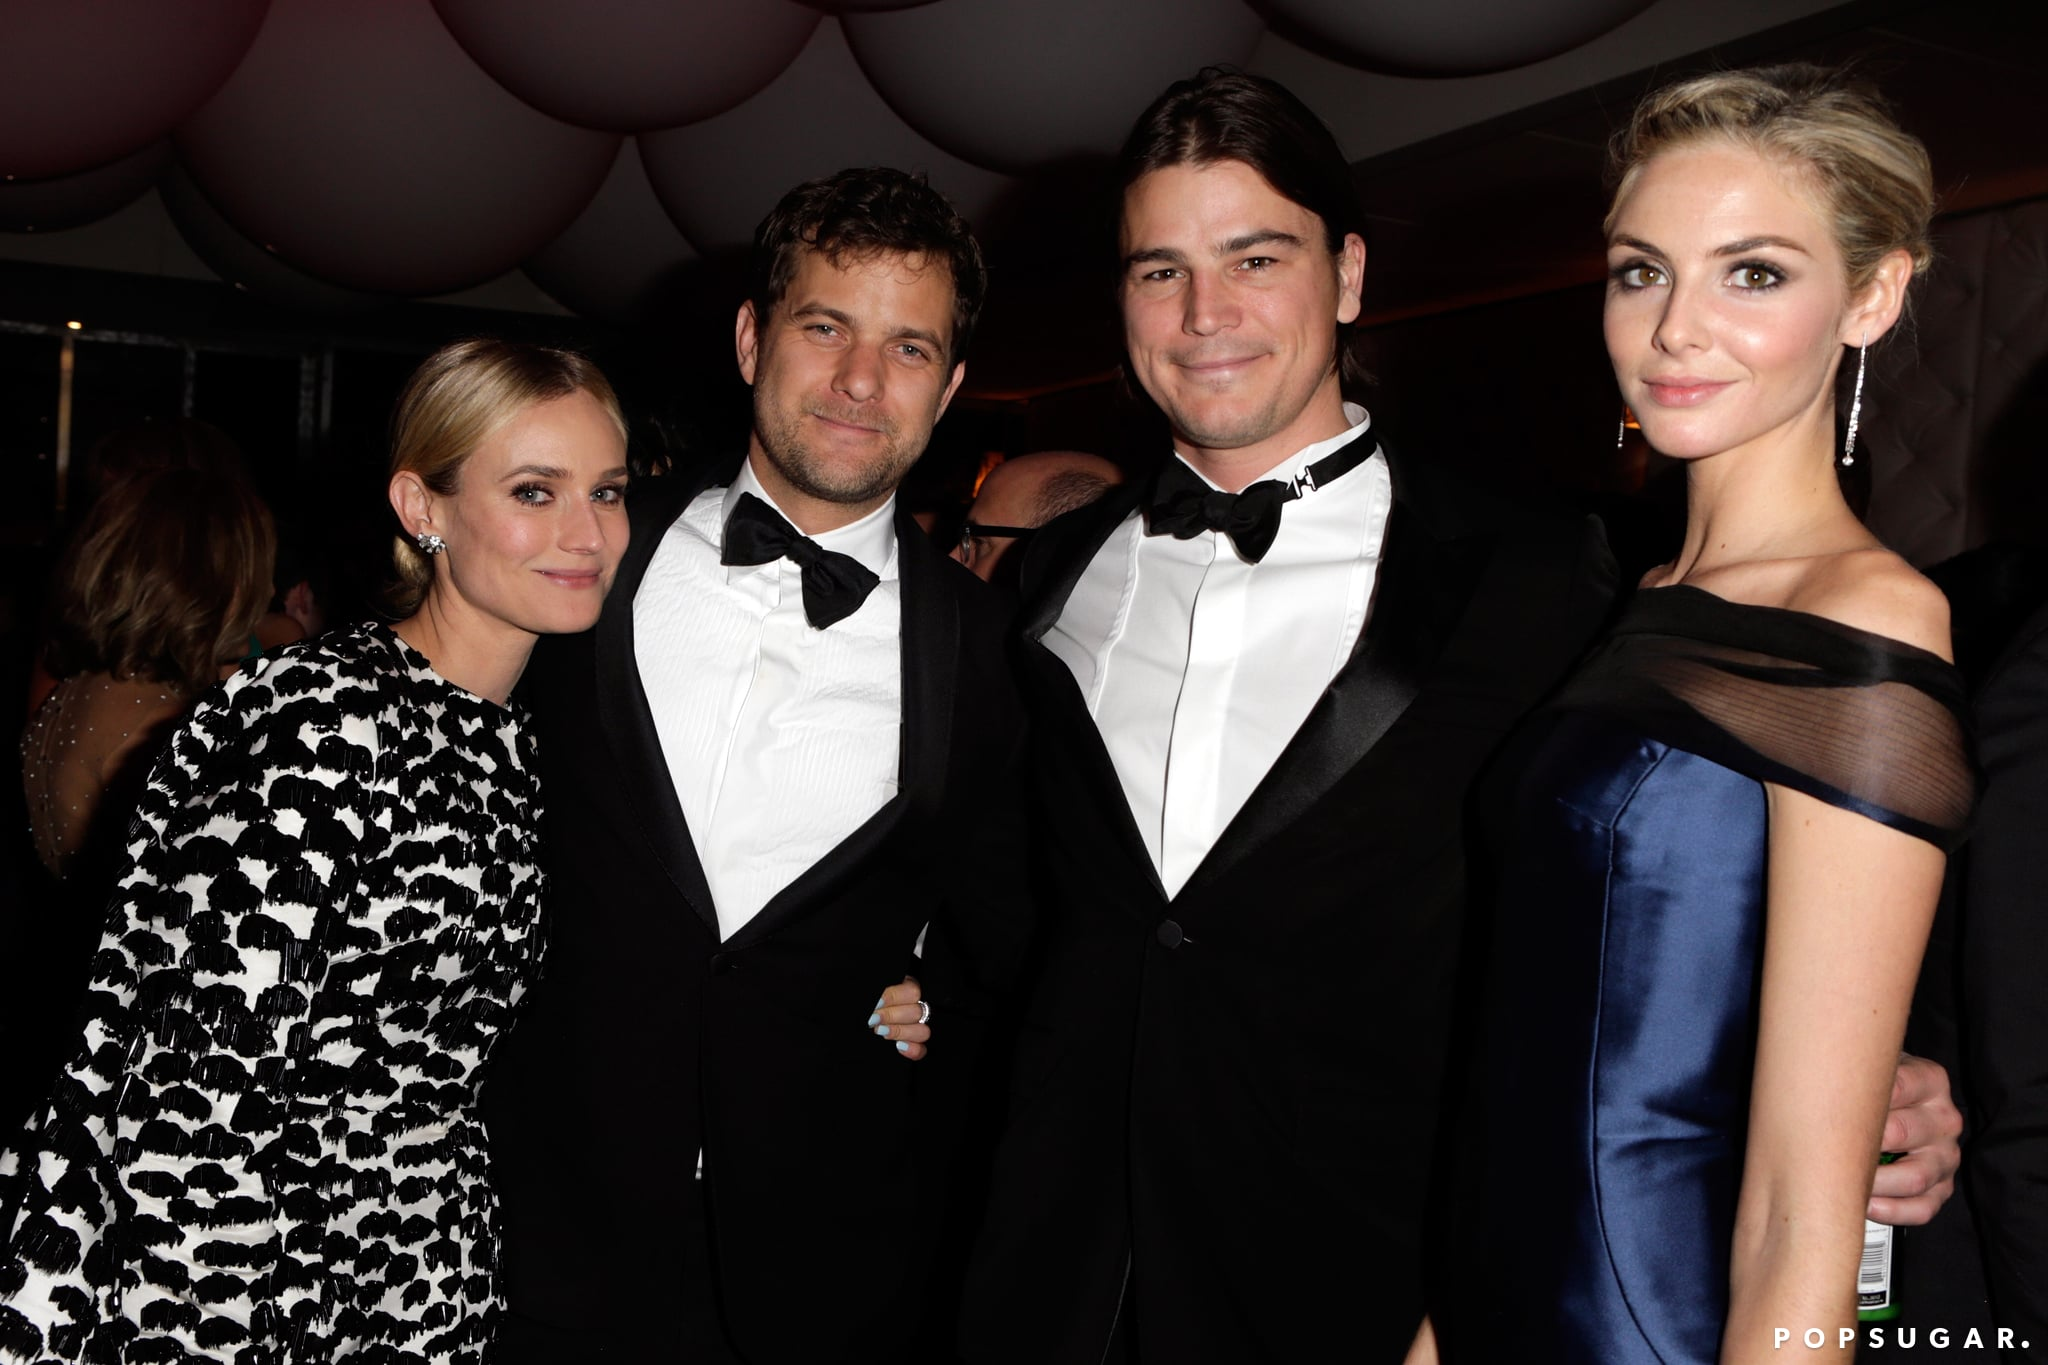 Diane Kruger and boyfriend Joshua Jackson hung out with Josh Hartnett and Tamsin Egerton at Vanity Fair's Oscar afterparty.